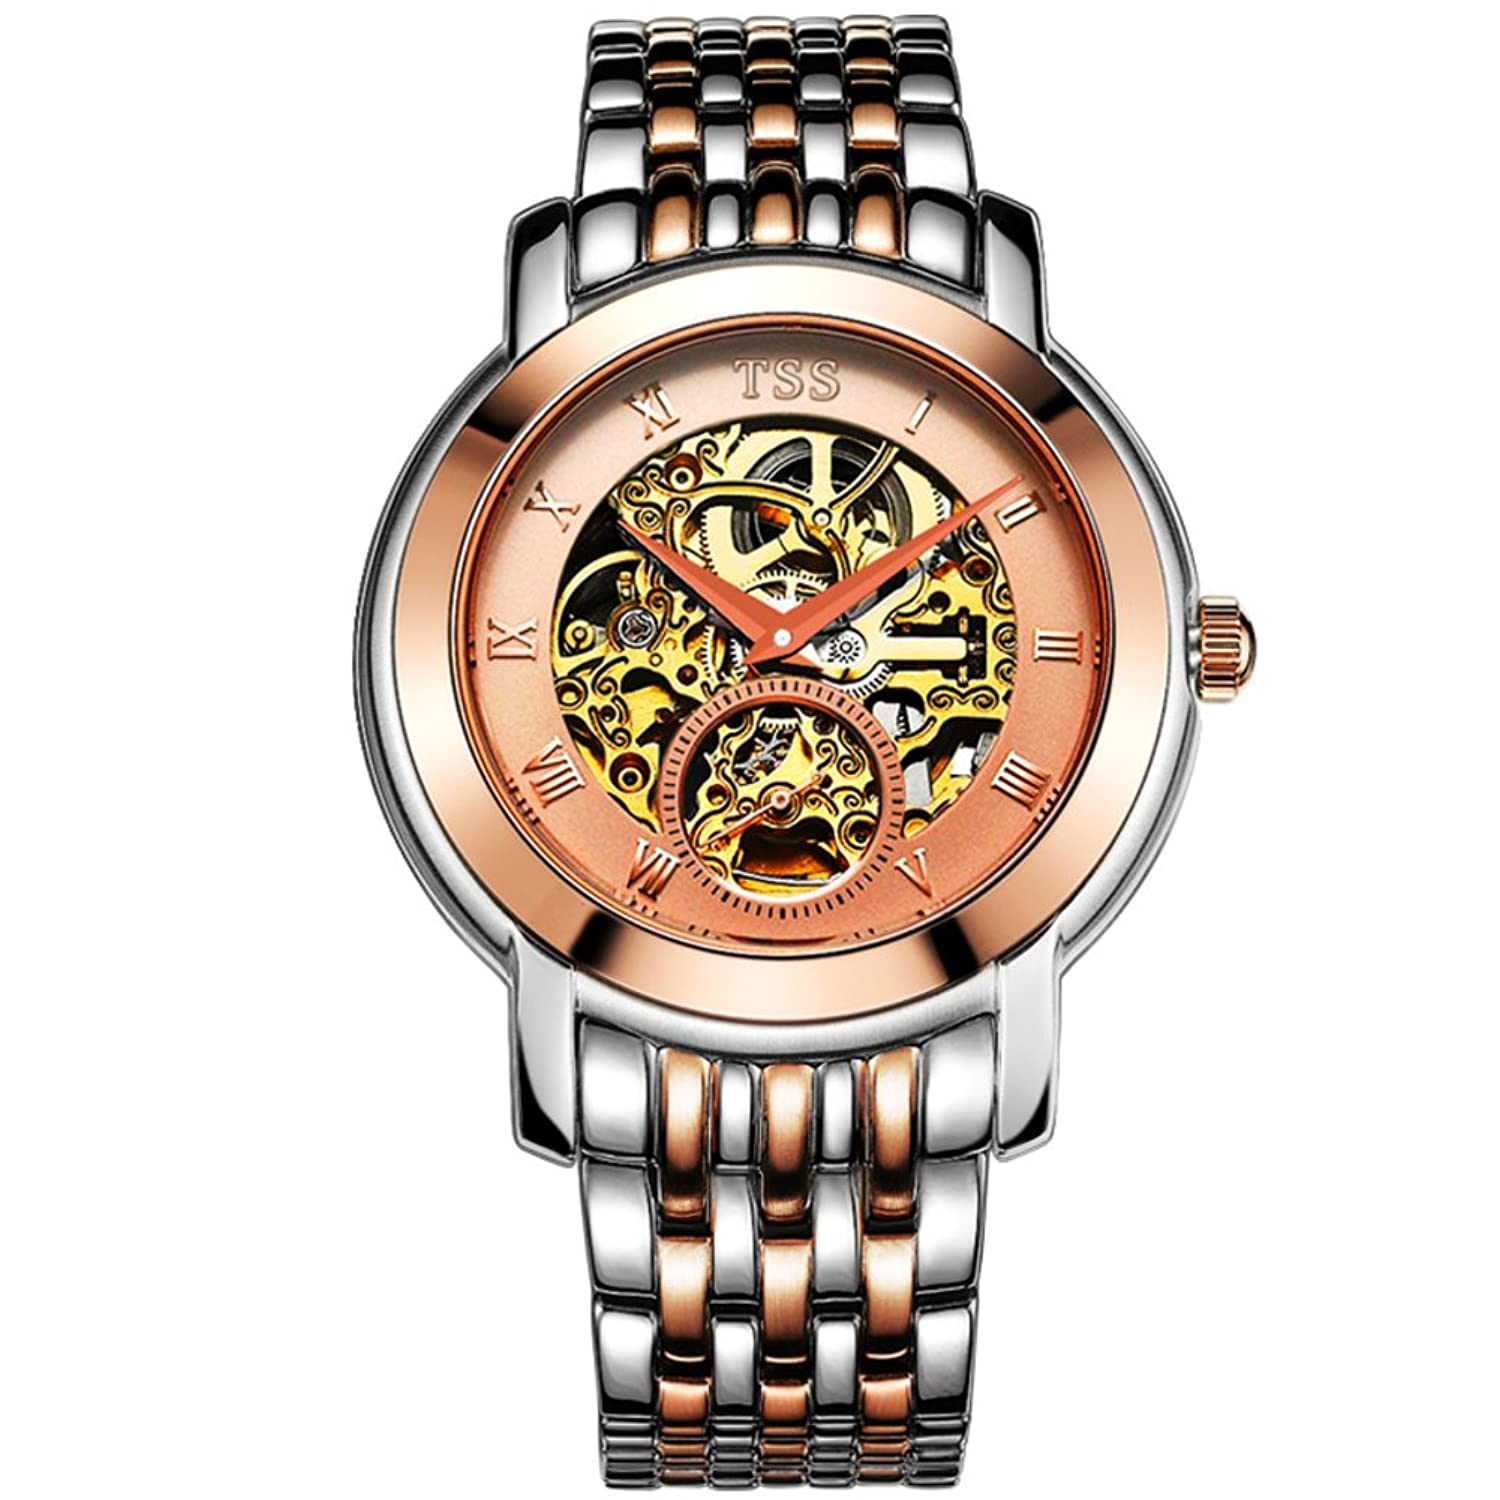 Hohle Handgelenk Herrenuhr-Mode wasserdicht Business Watch-F